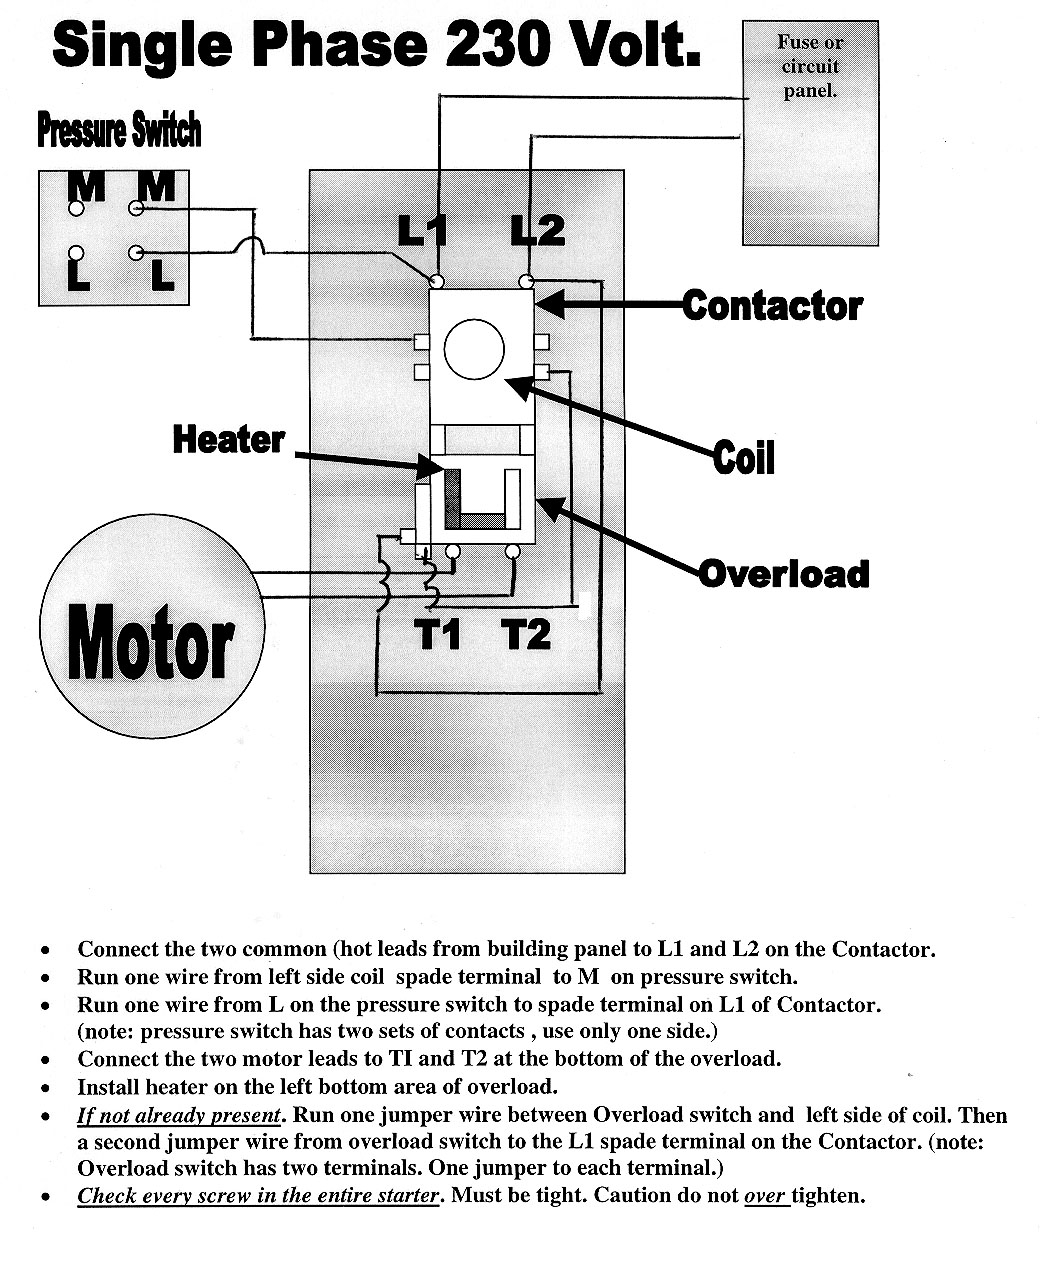 Air Compressor 230v 1 Phase Wiring Diagram - Basic Wiring Diagram •